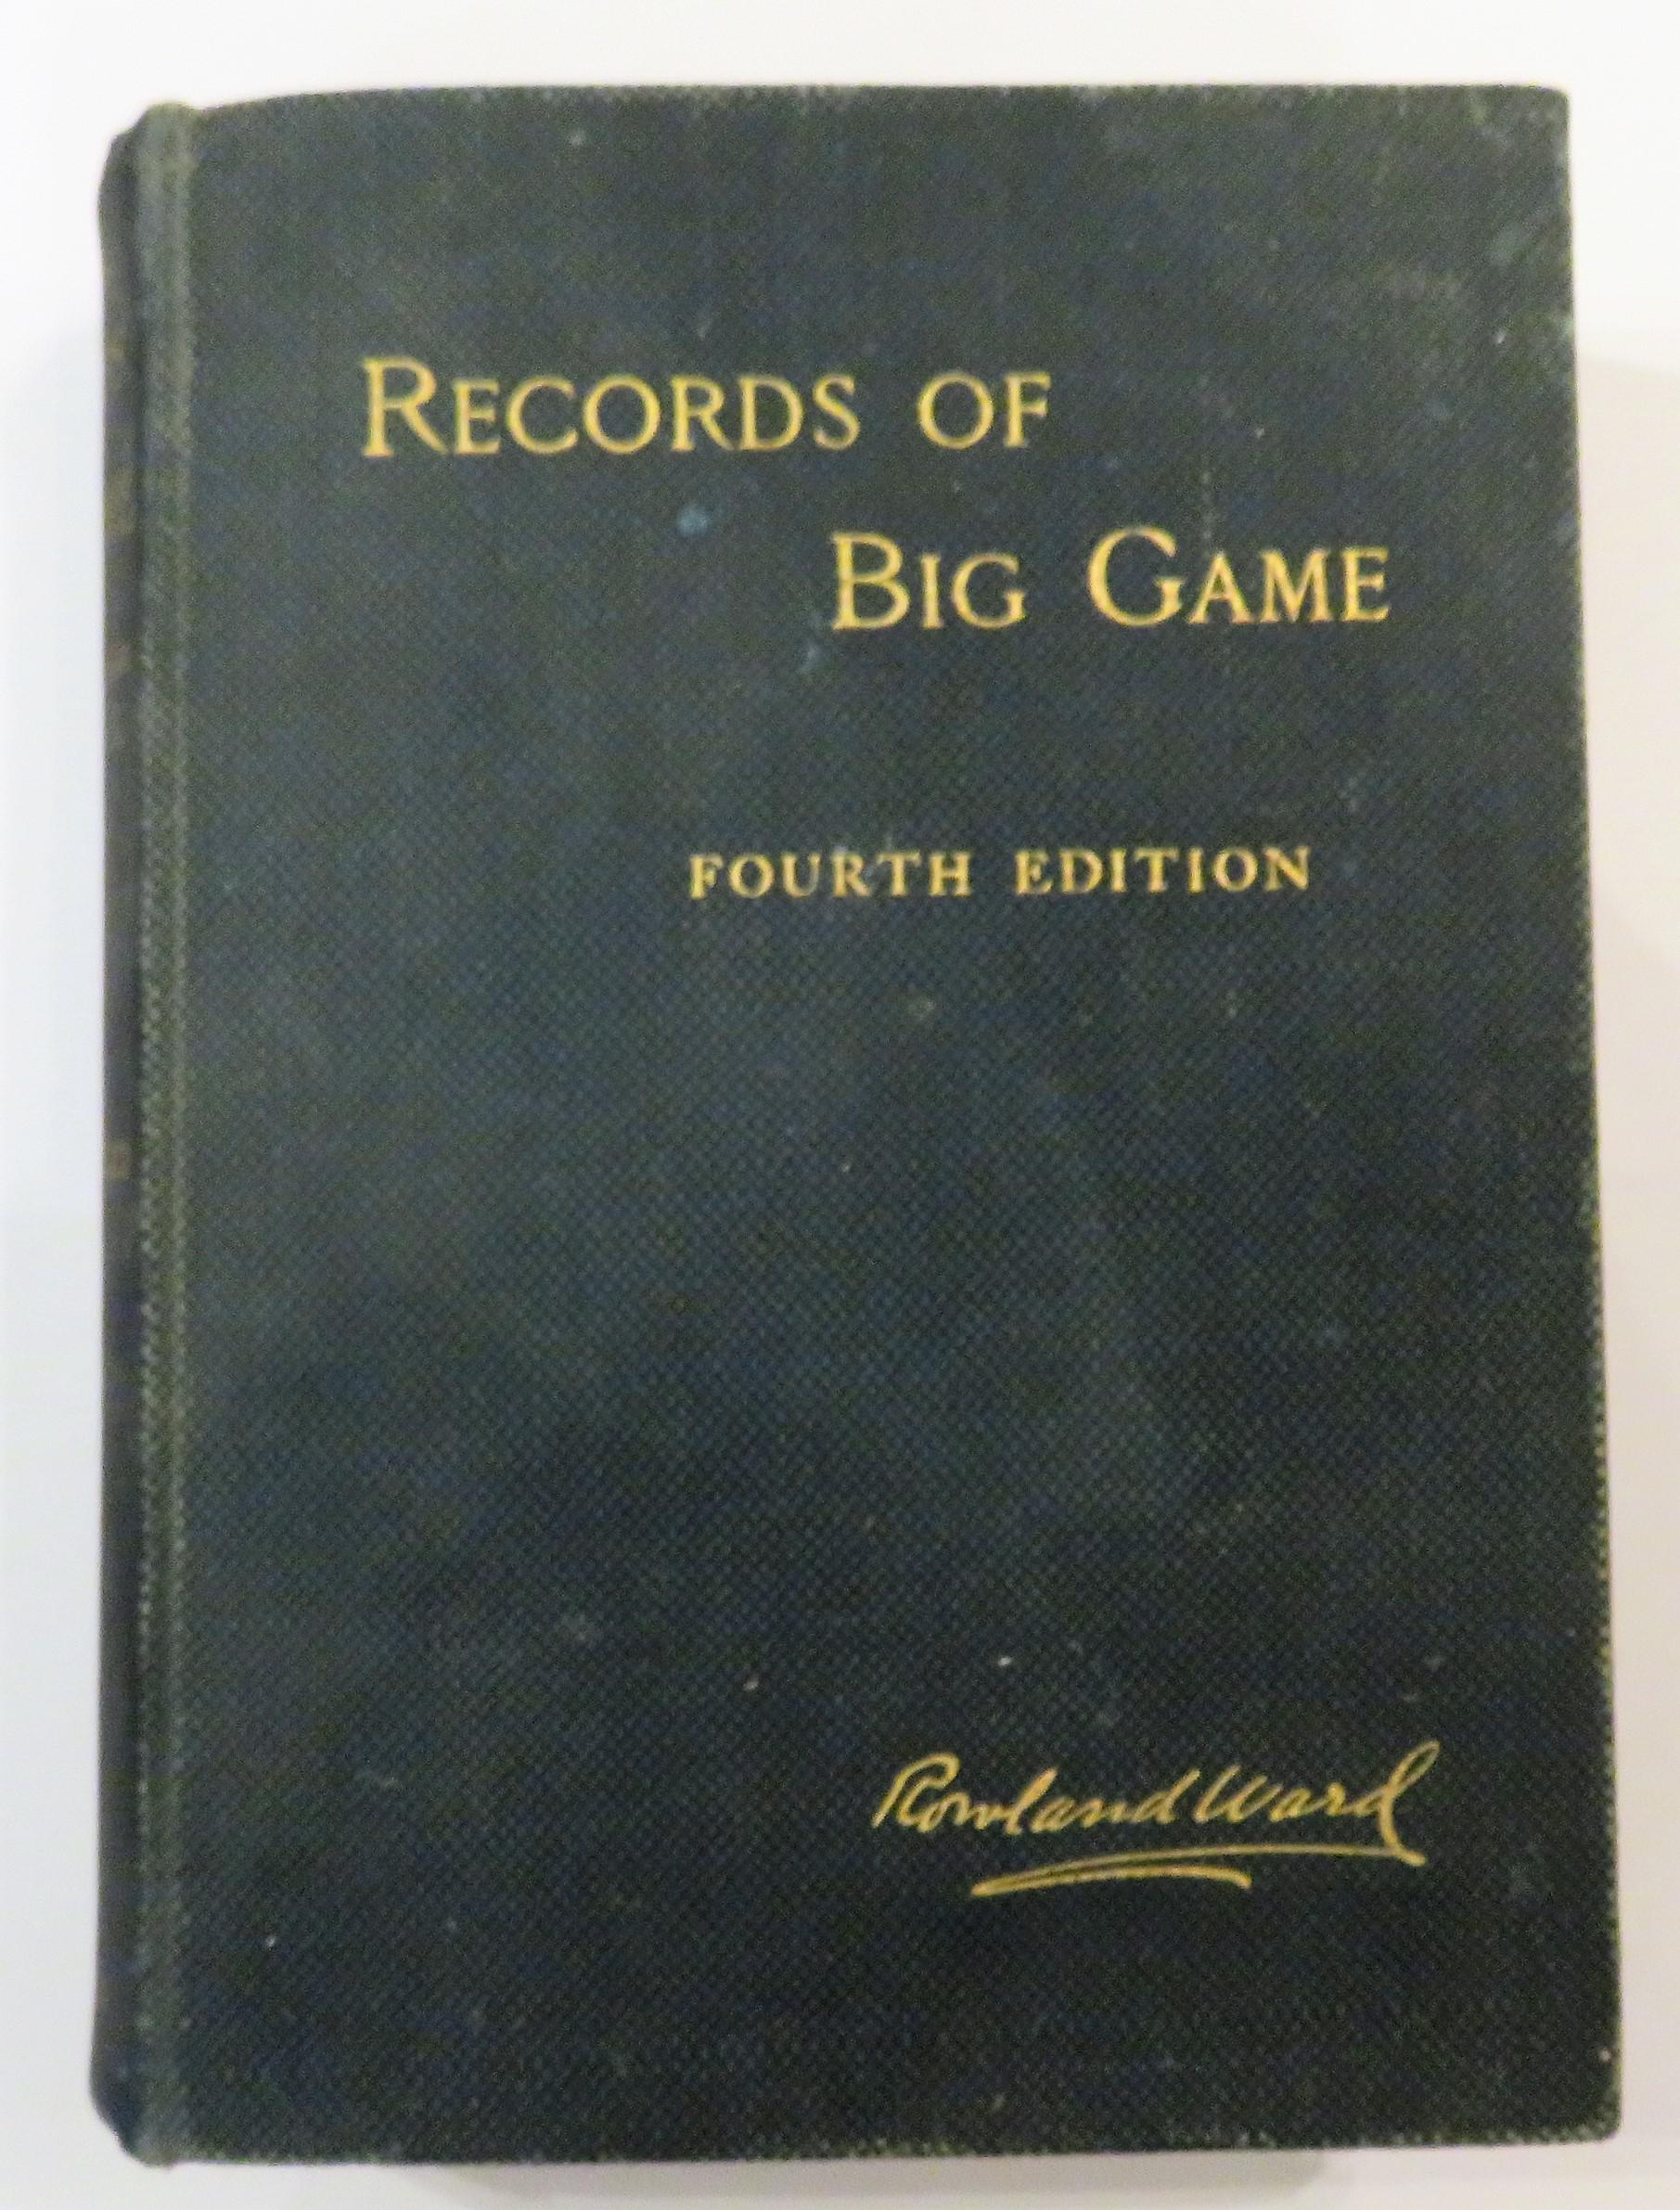 Records of Big Game With The Distribution Characteristics Dimensions Weights And Horn & Tusk Measurements of the Different Species